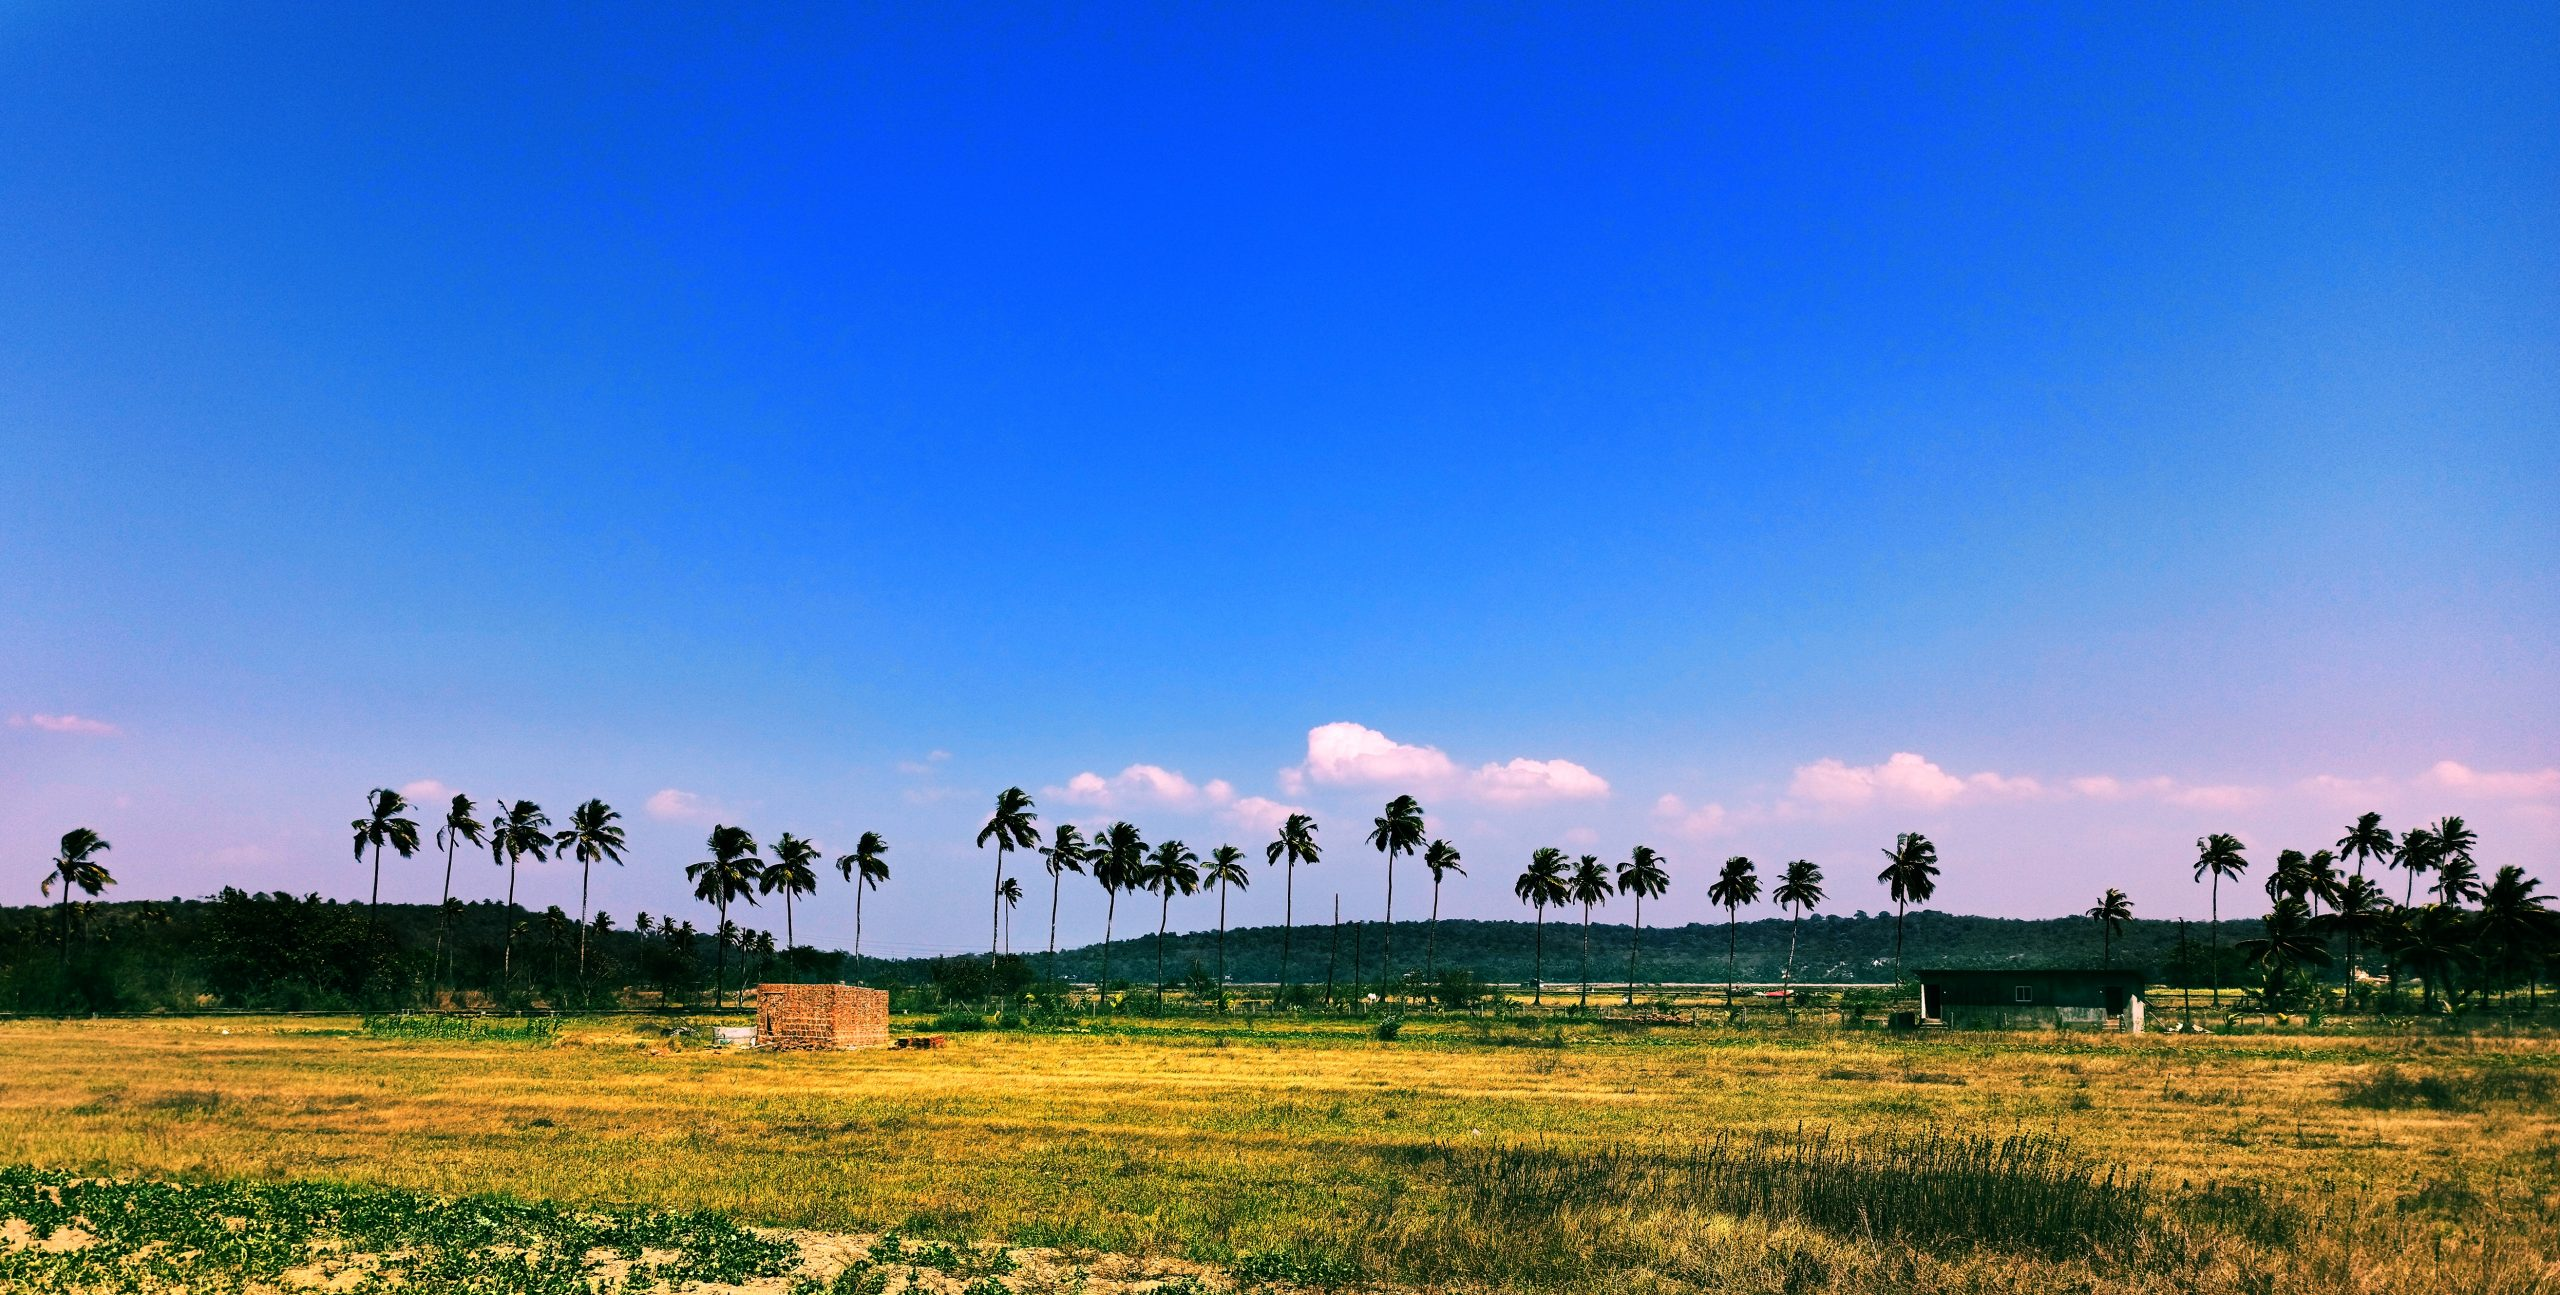 A scenic view with blue sky